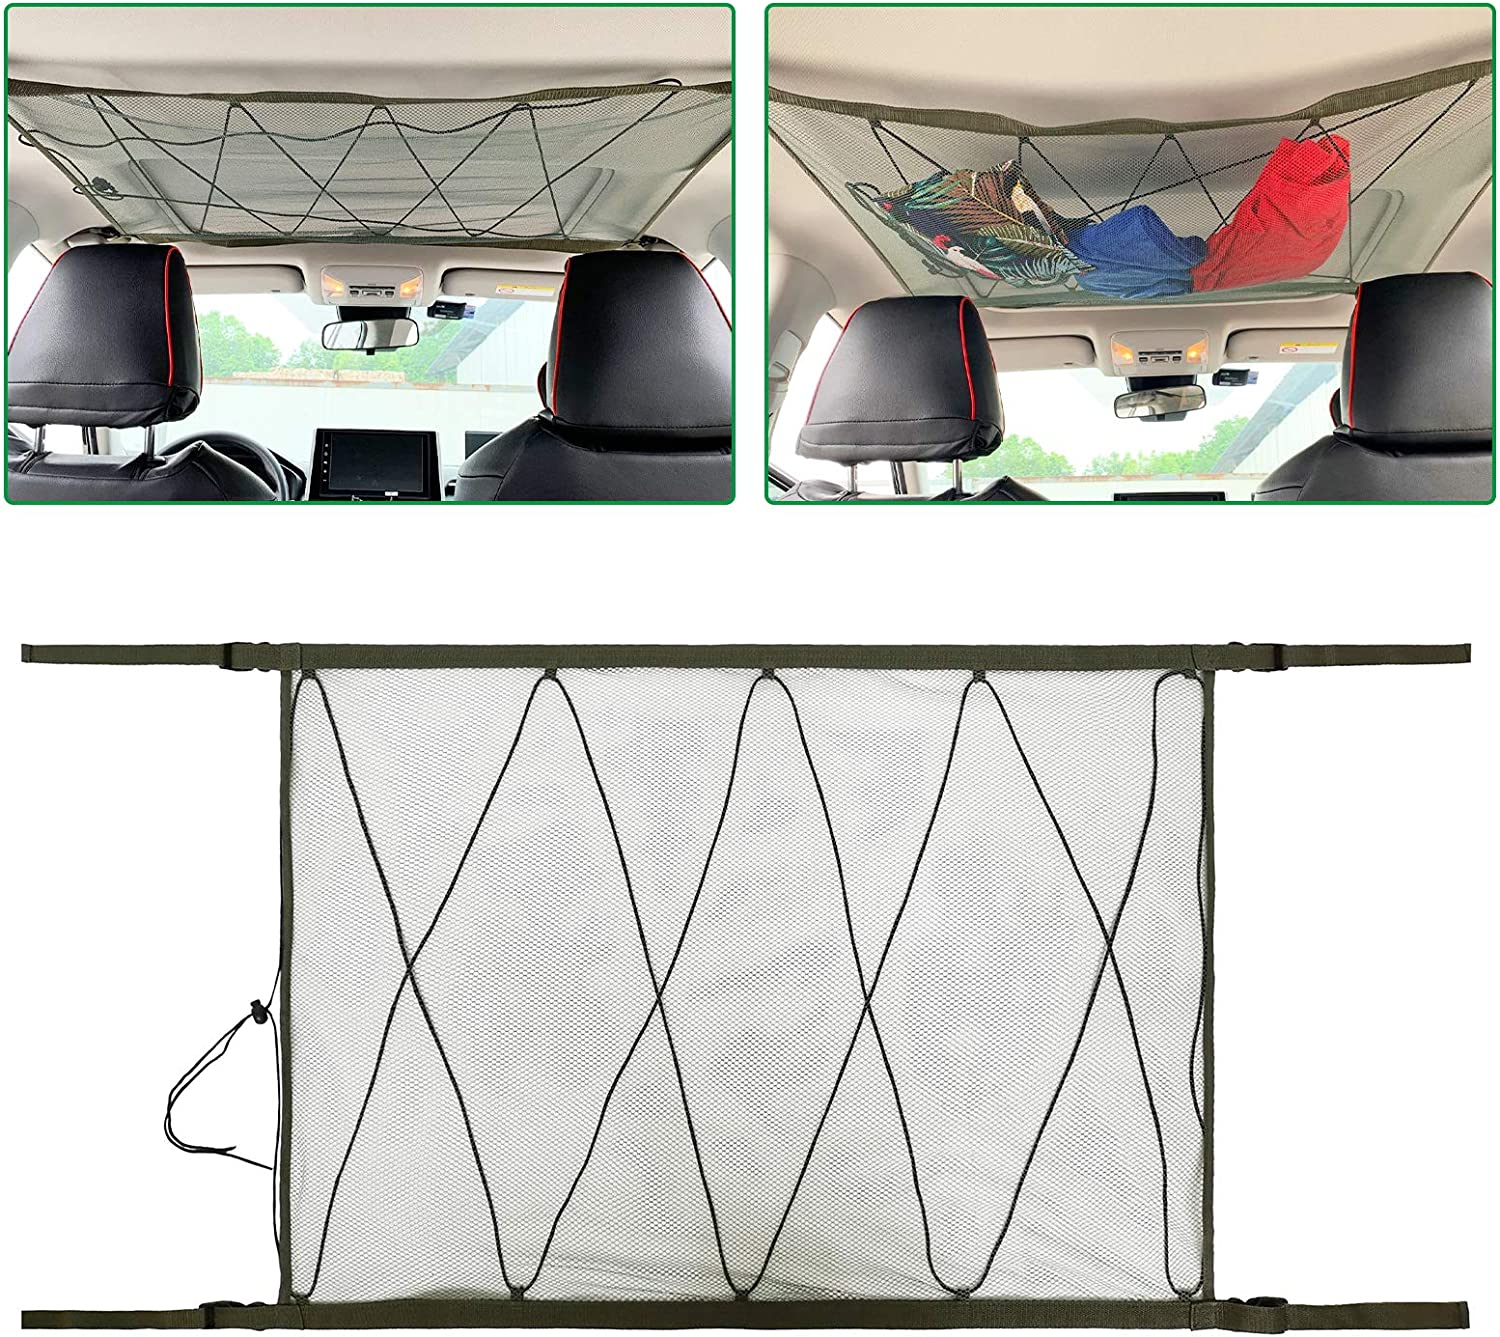 Ceiling Cargo Net Pocket Storage Bag Car Roof Long Trip Tent Putting Quilt Childrens Toy Towel Sundries Van SUV Car Interior Accessories